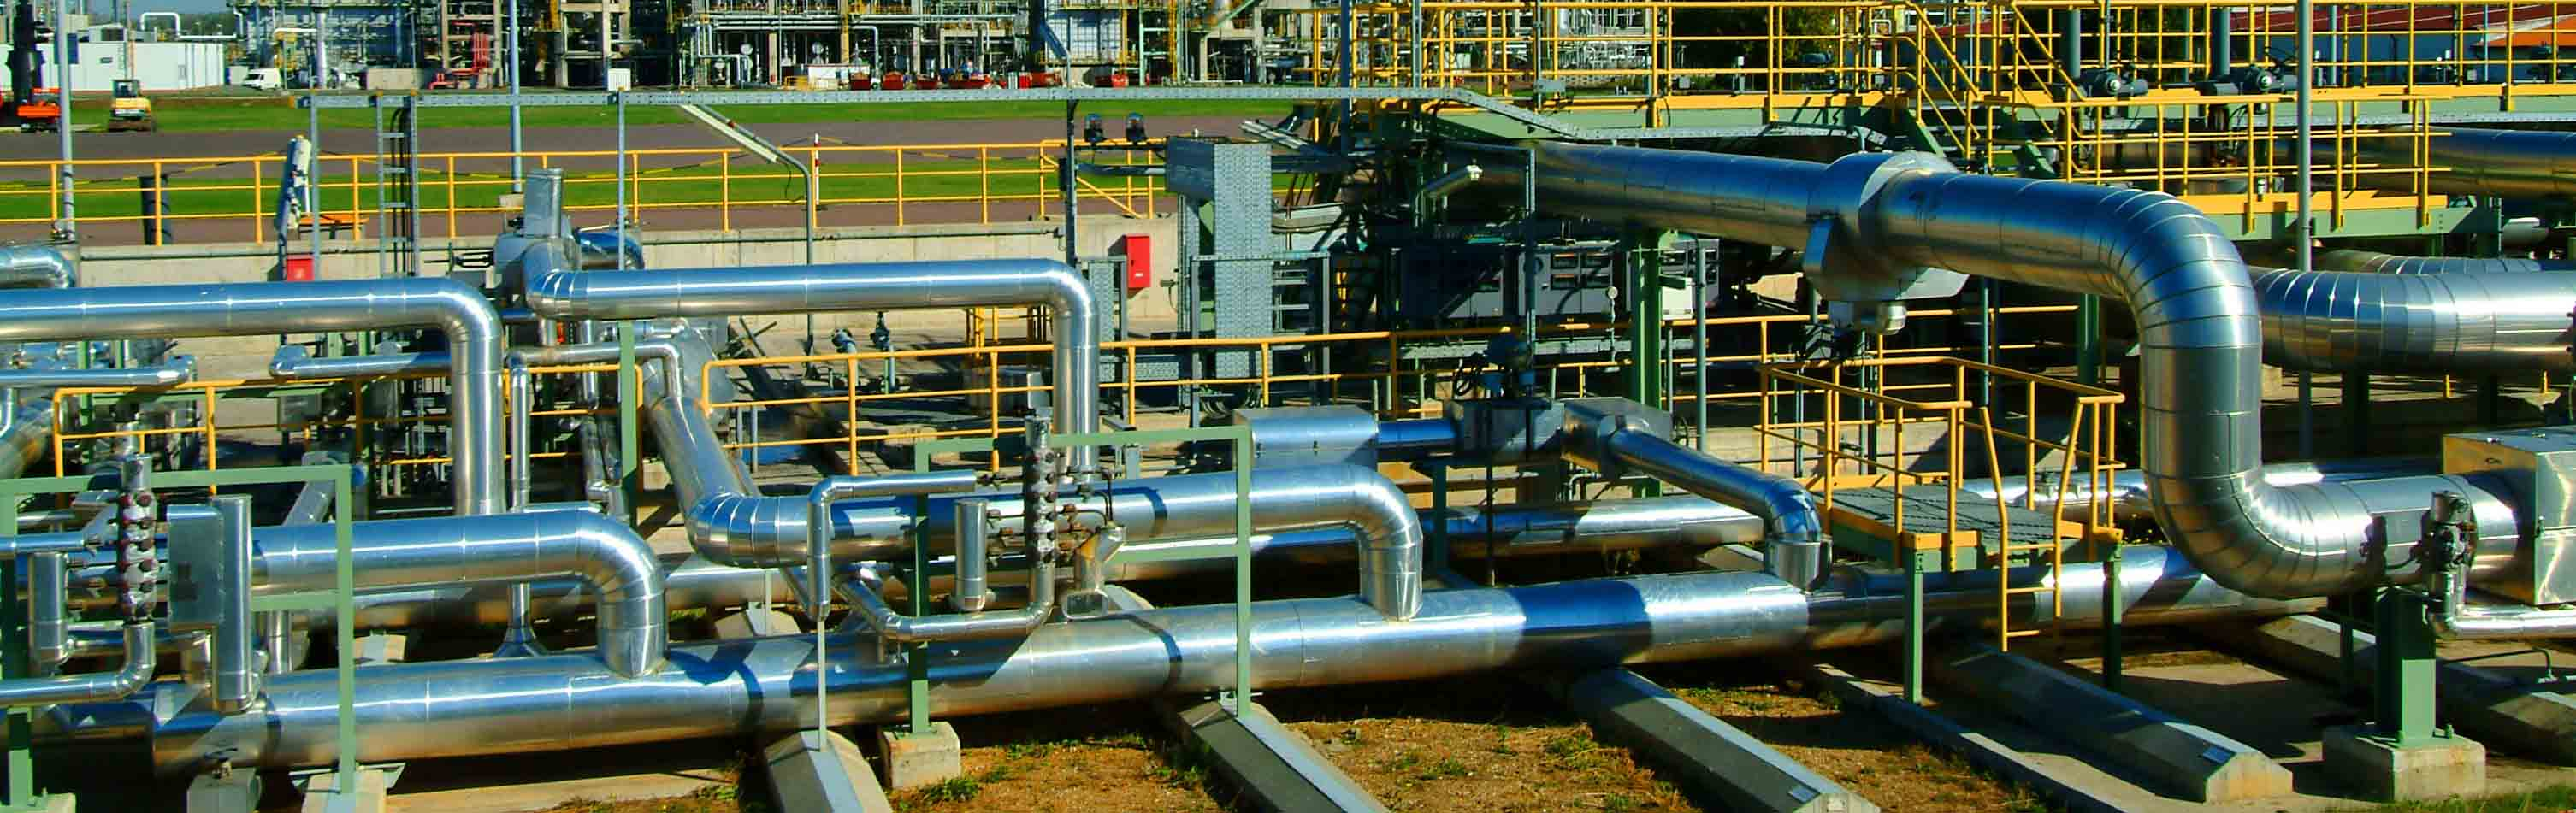 oil-refinery-piping-day